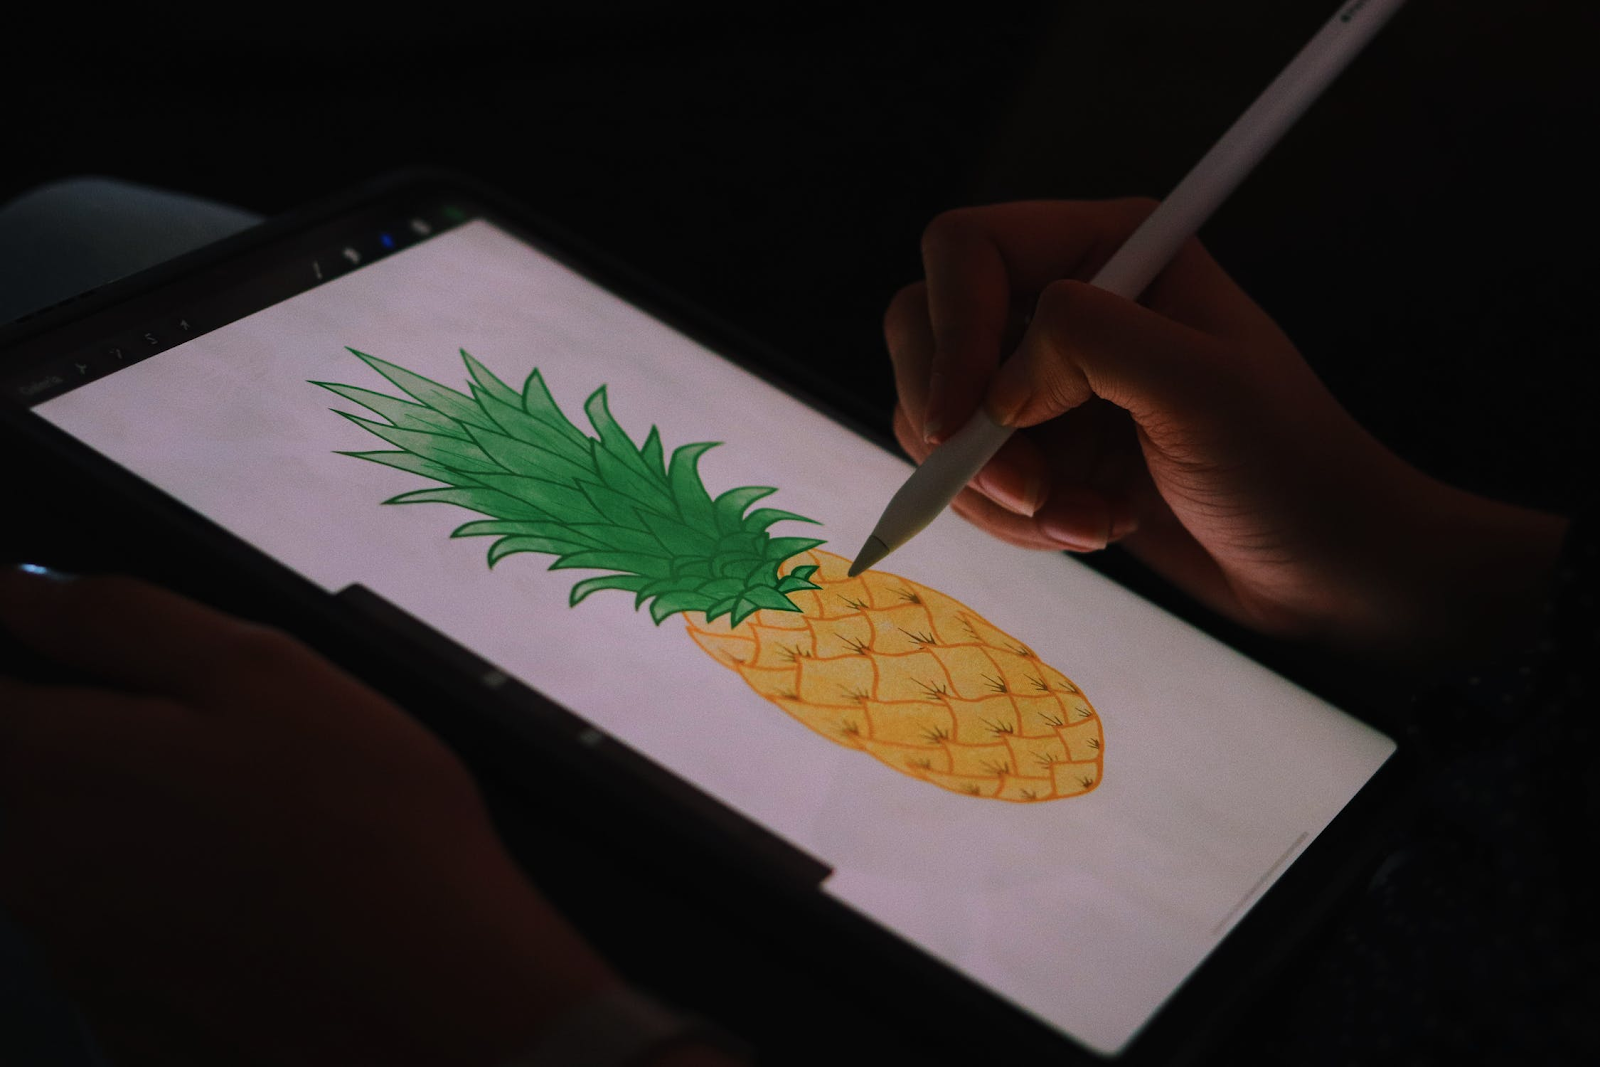 A person drawing on a tablet